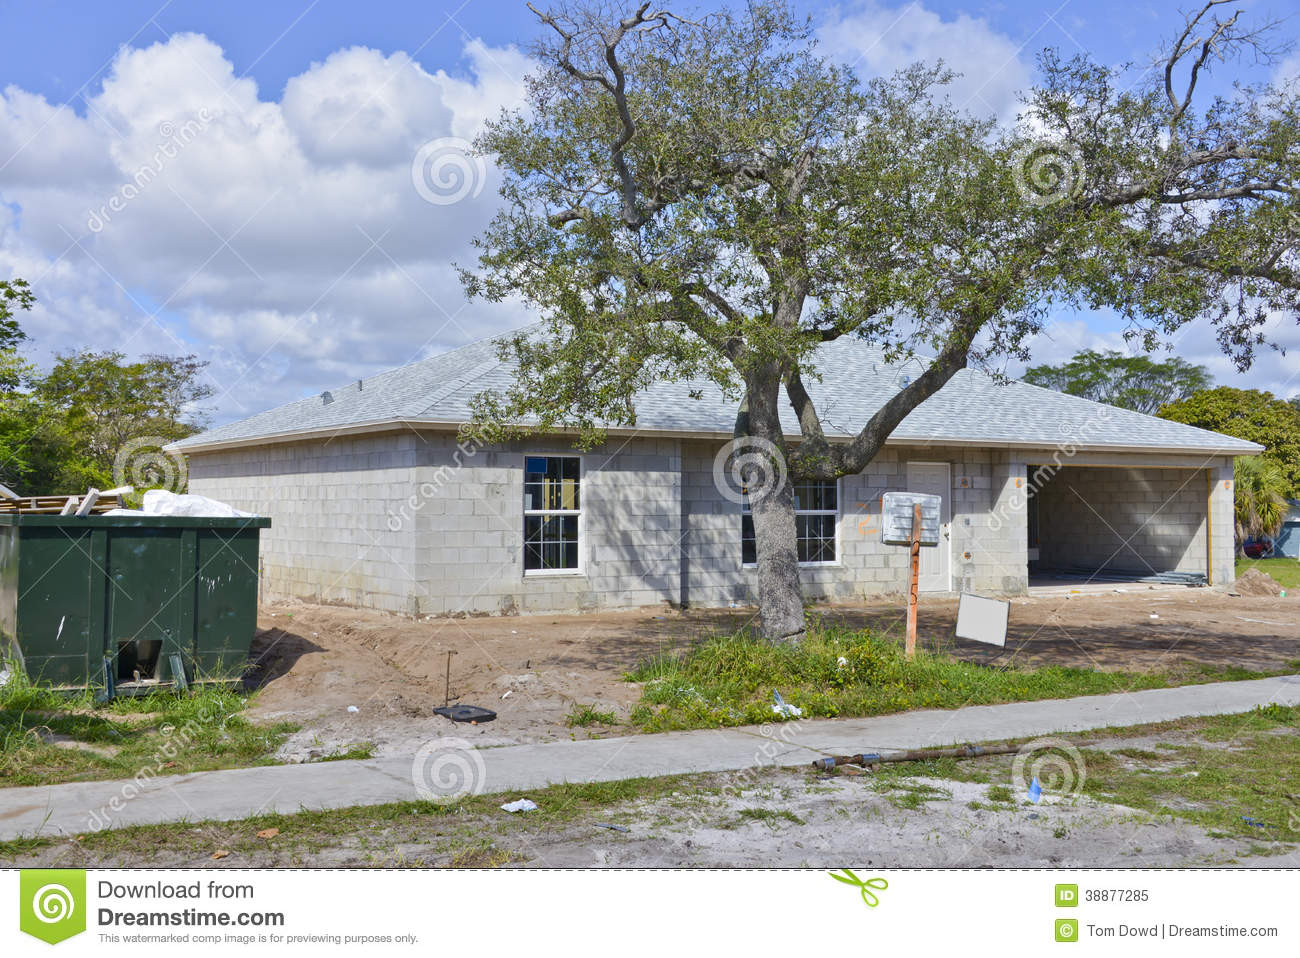 Family home under construction stock image image 38877285 for Concrete homes in florida